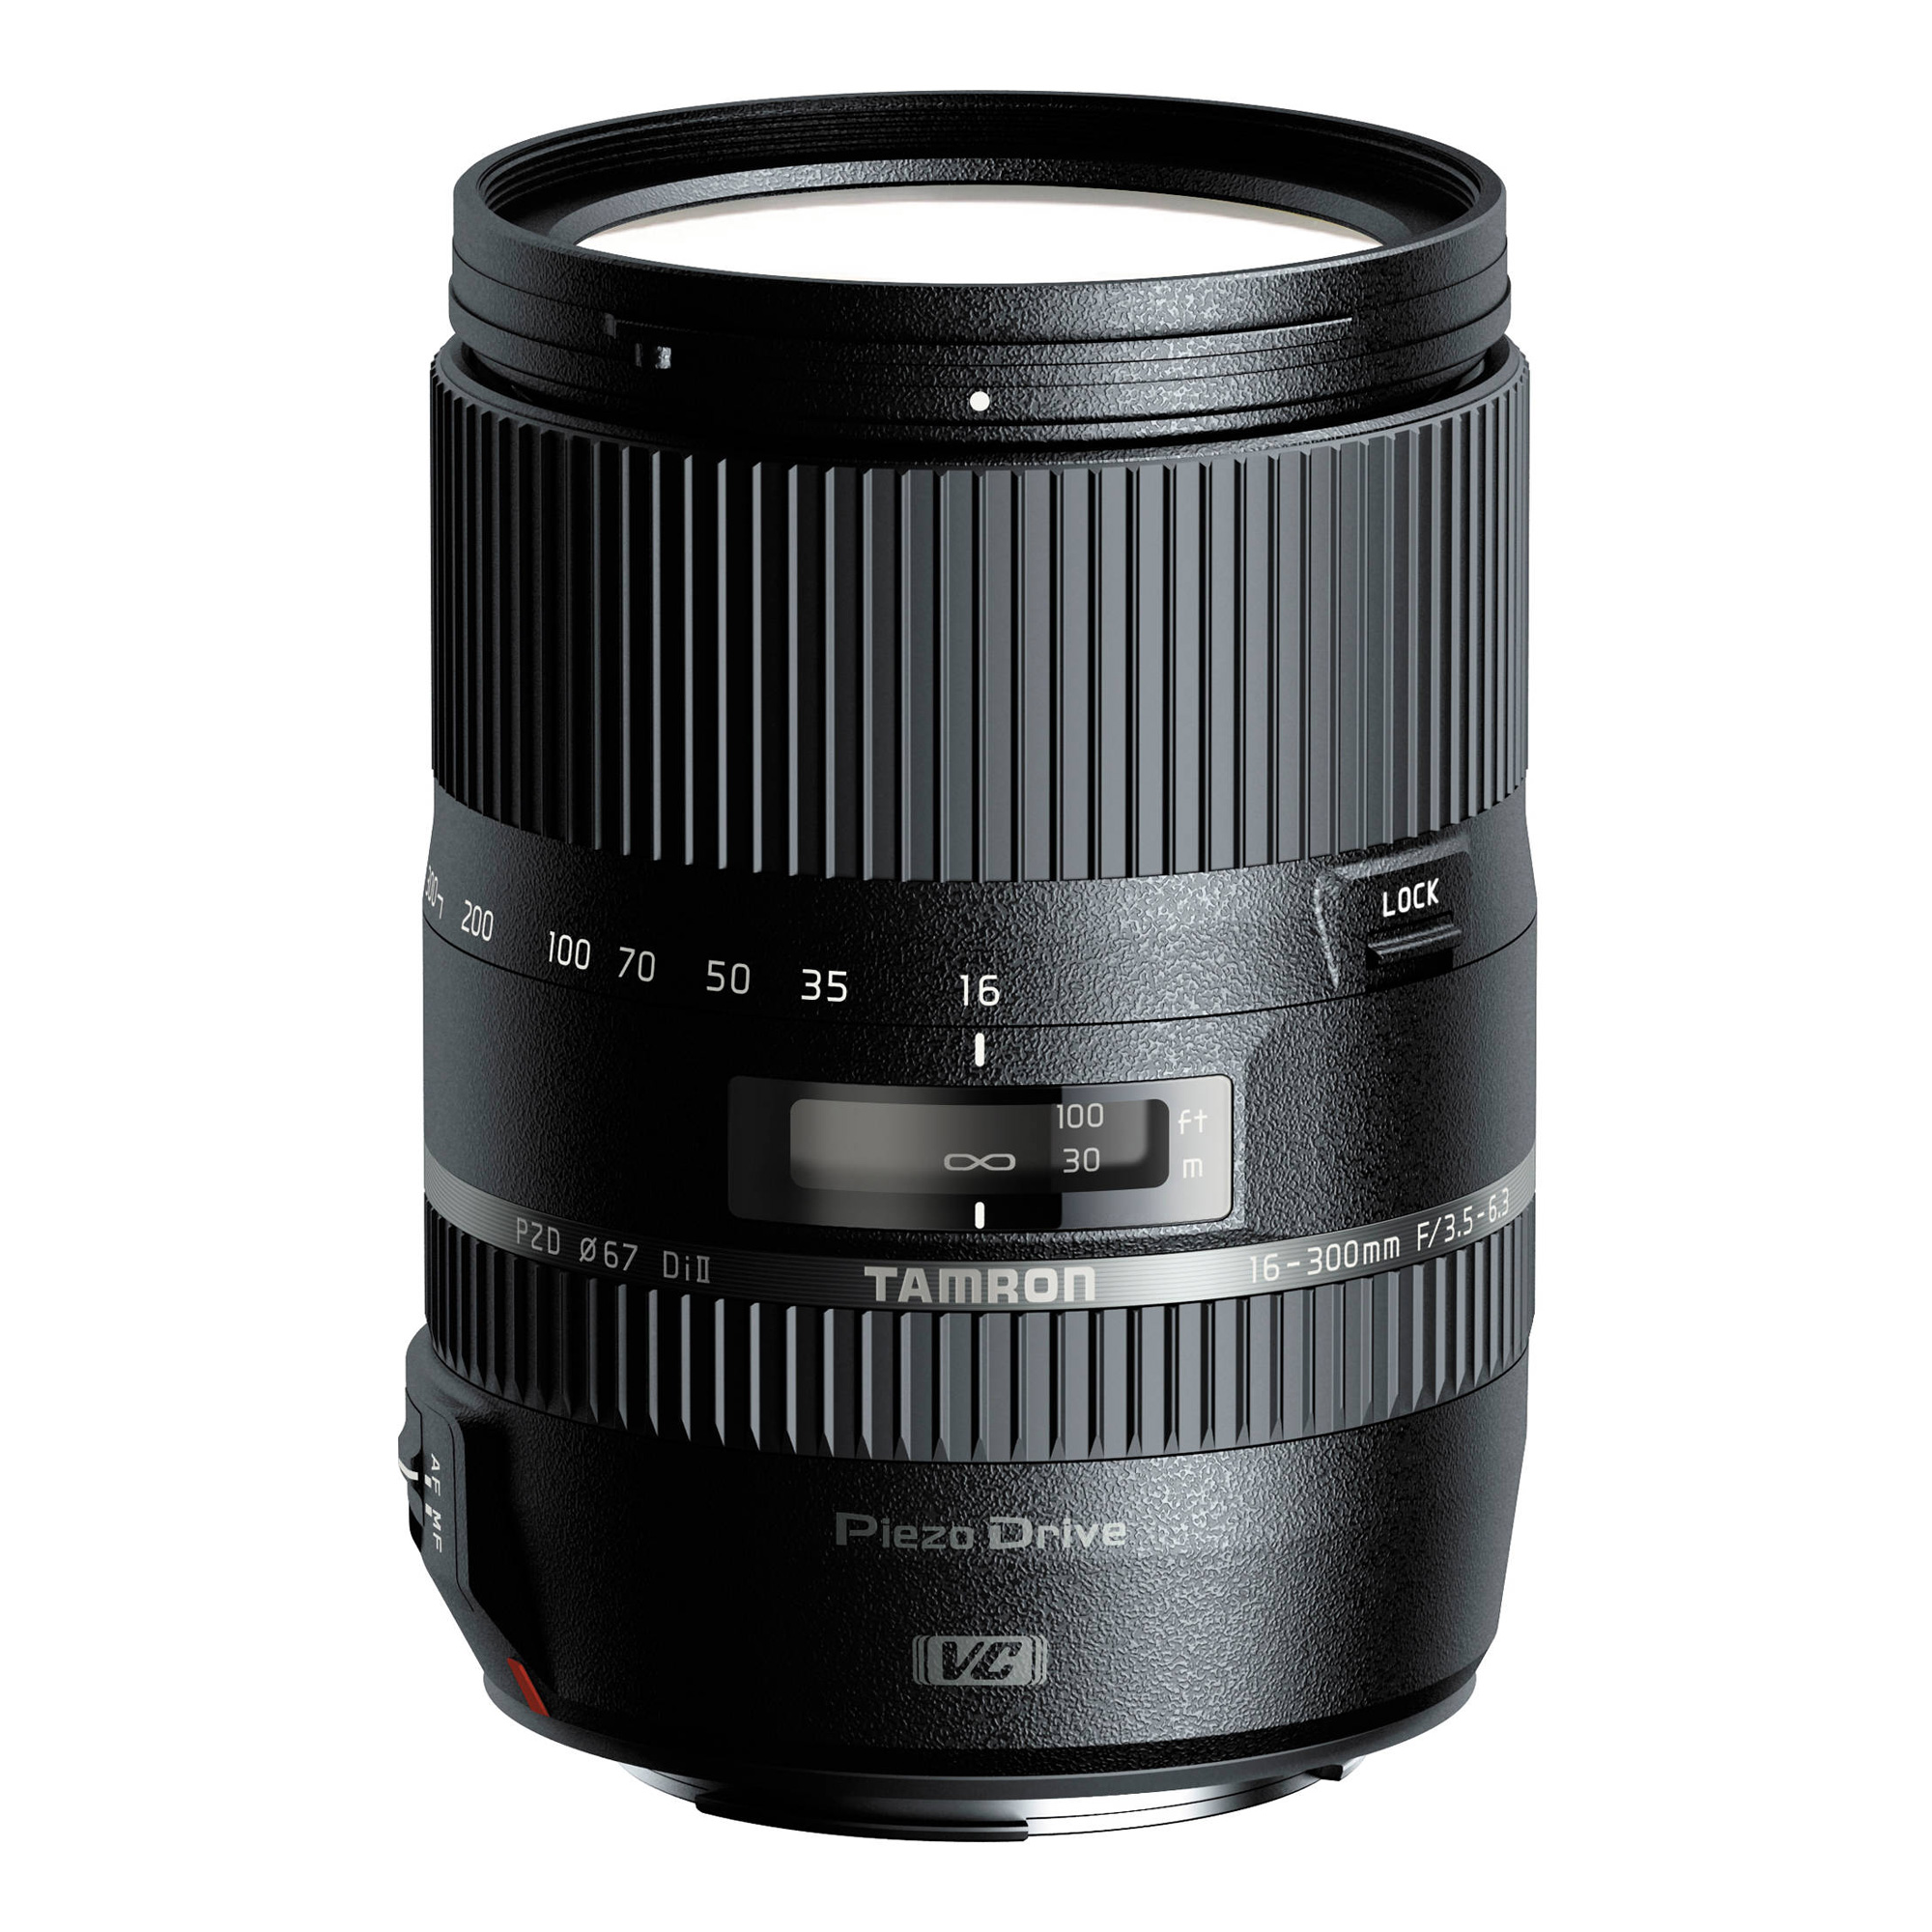 16-300mm f/3.5-6.3 Di II PZD Macro Lens for Sony